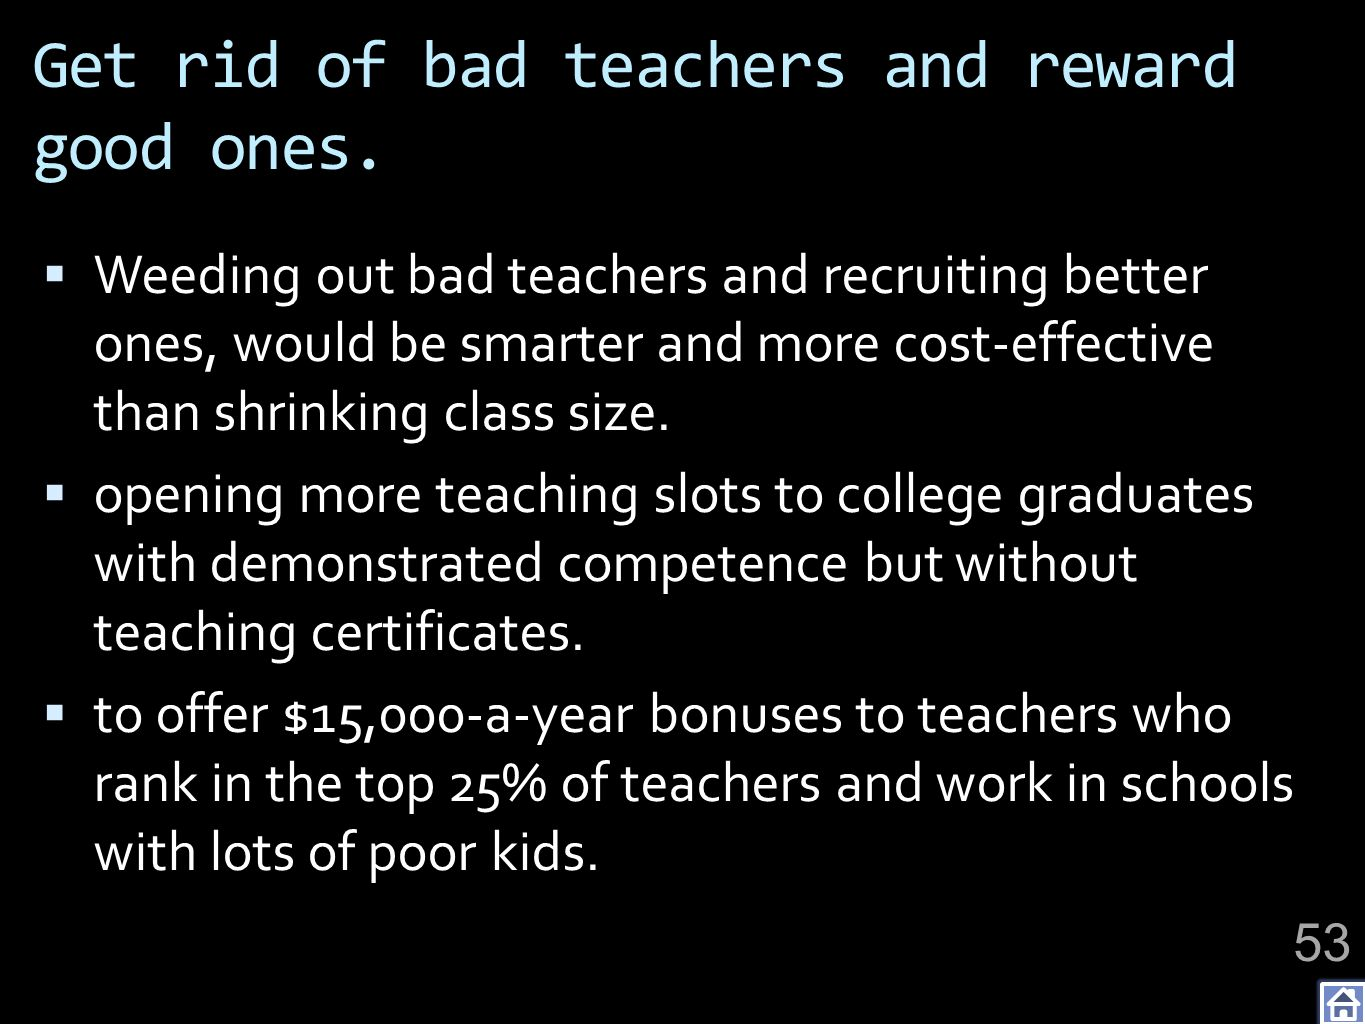 Get rid of bad teachers and reward good ones. Weeding out bad teachers and recruiting better ones, would be smarter and more cost-effective than shrin